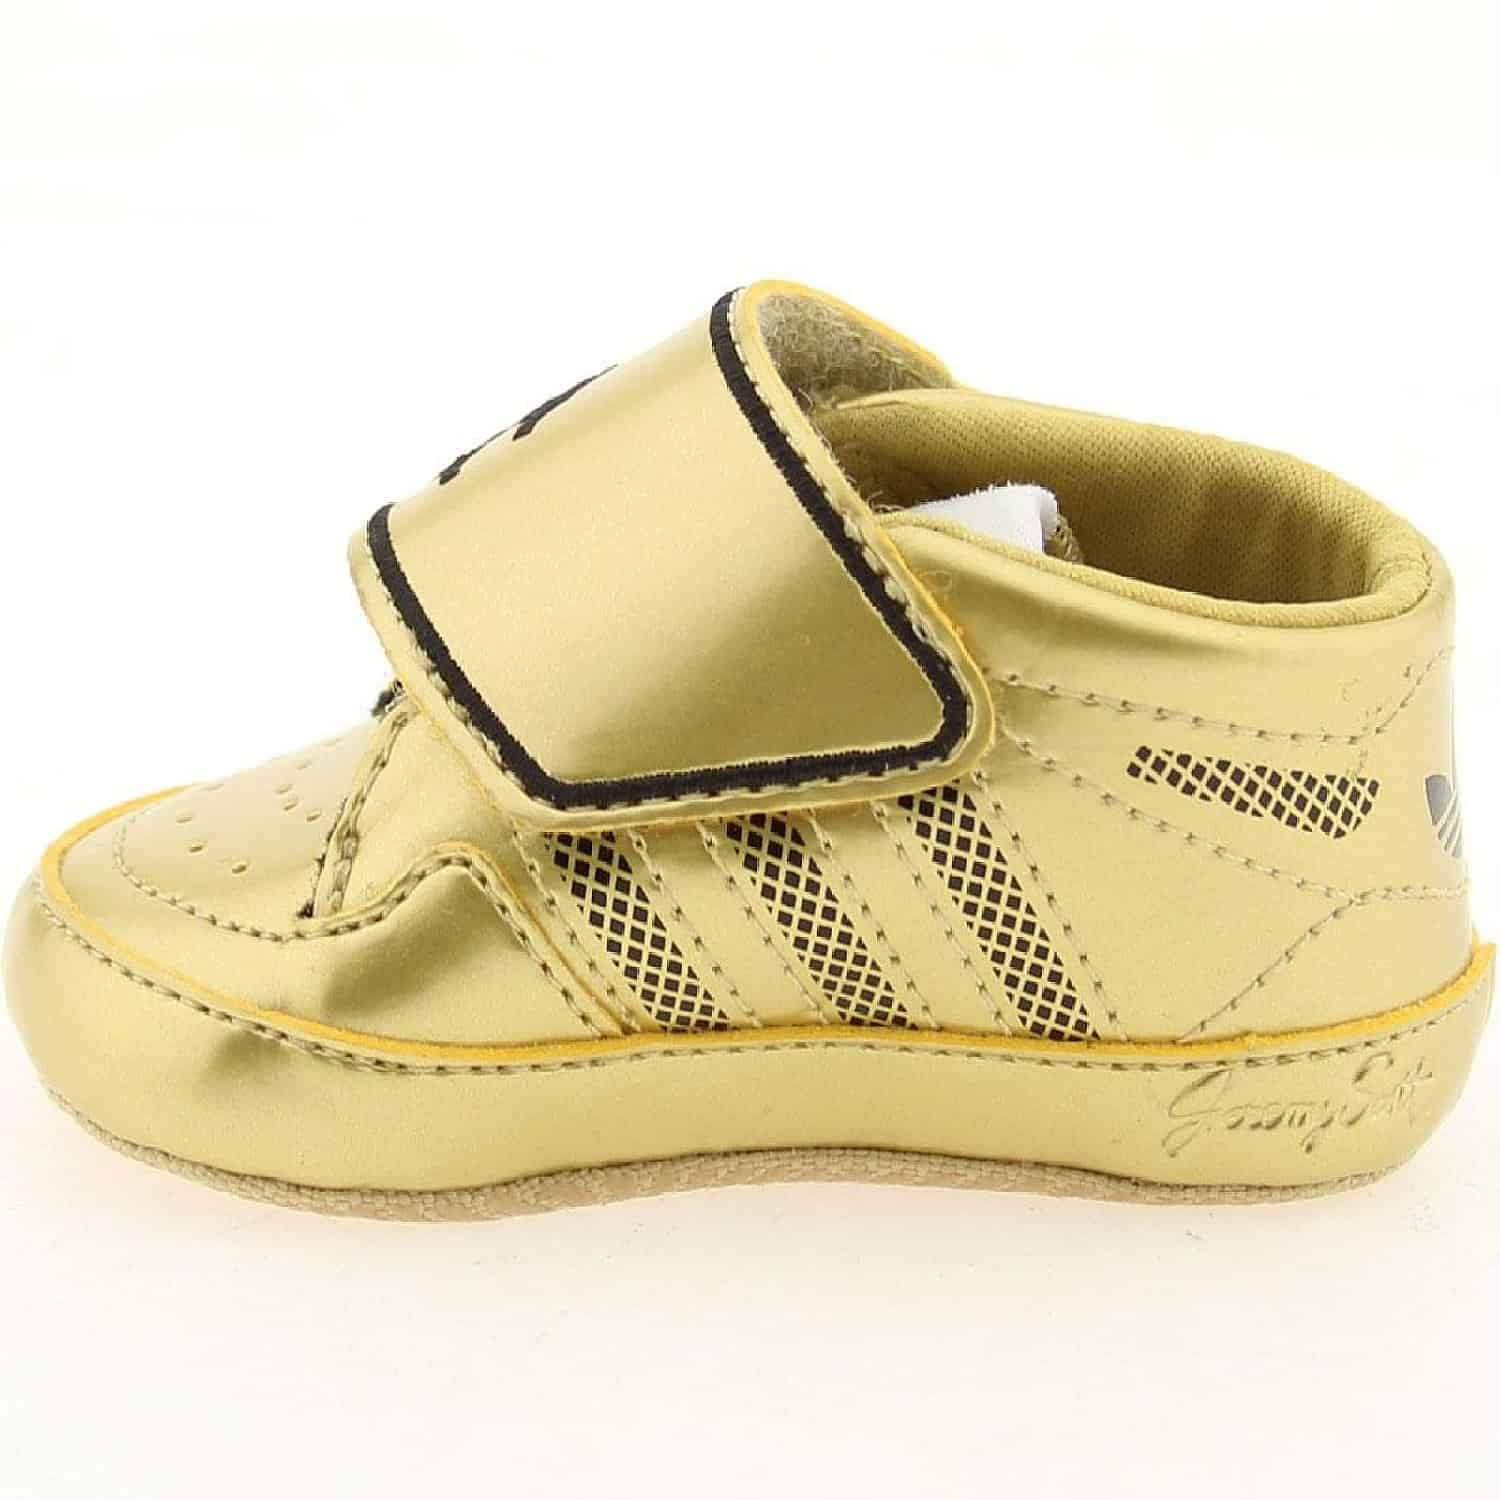 Jeremy Scott Gold Baby Shoes Style Guru Fashion Glitz